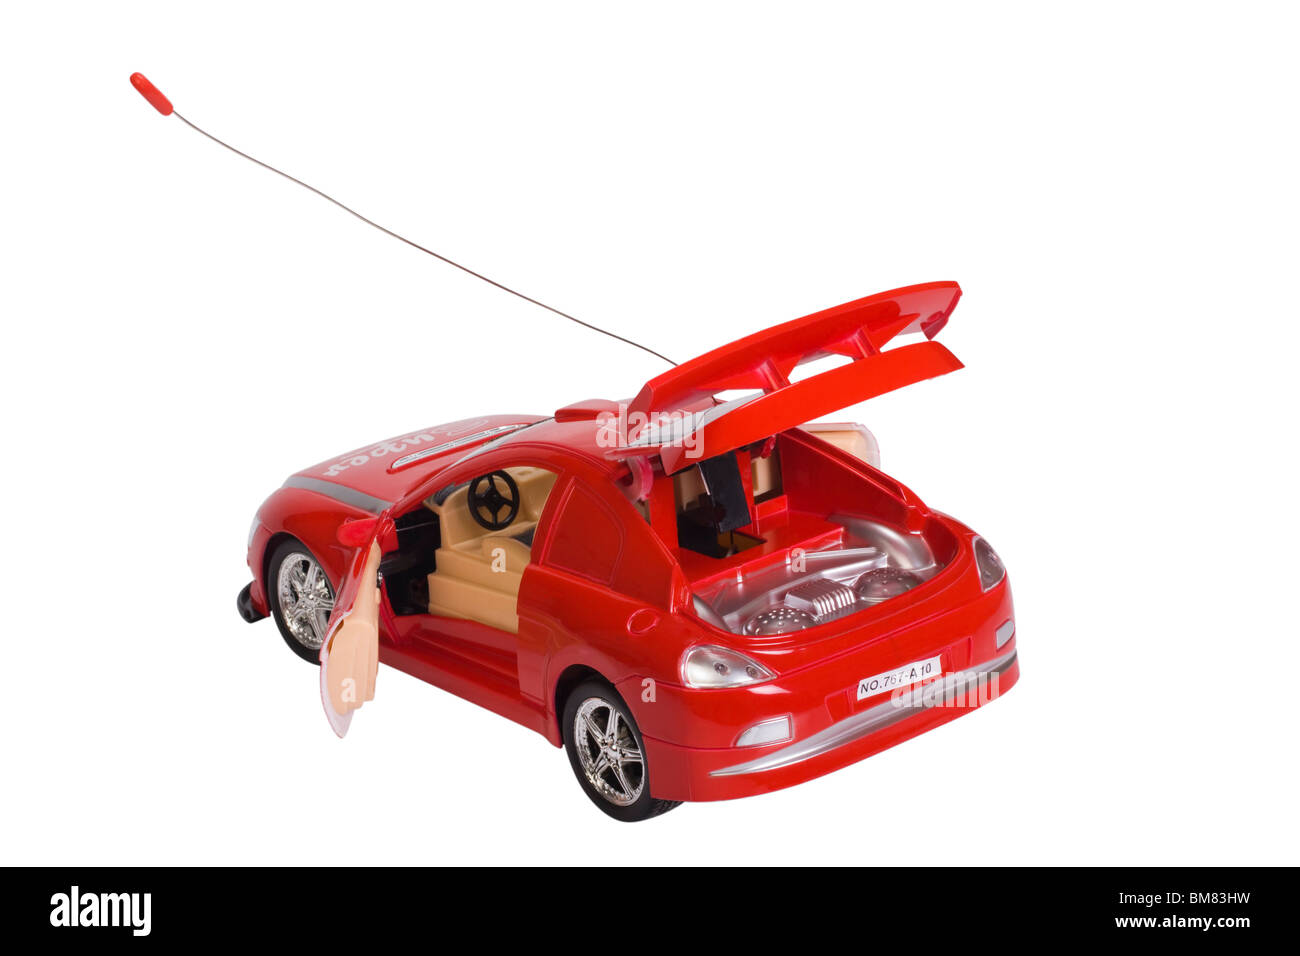 Close-up of a remote controlled toy car - Stock Image